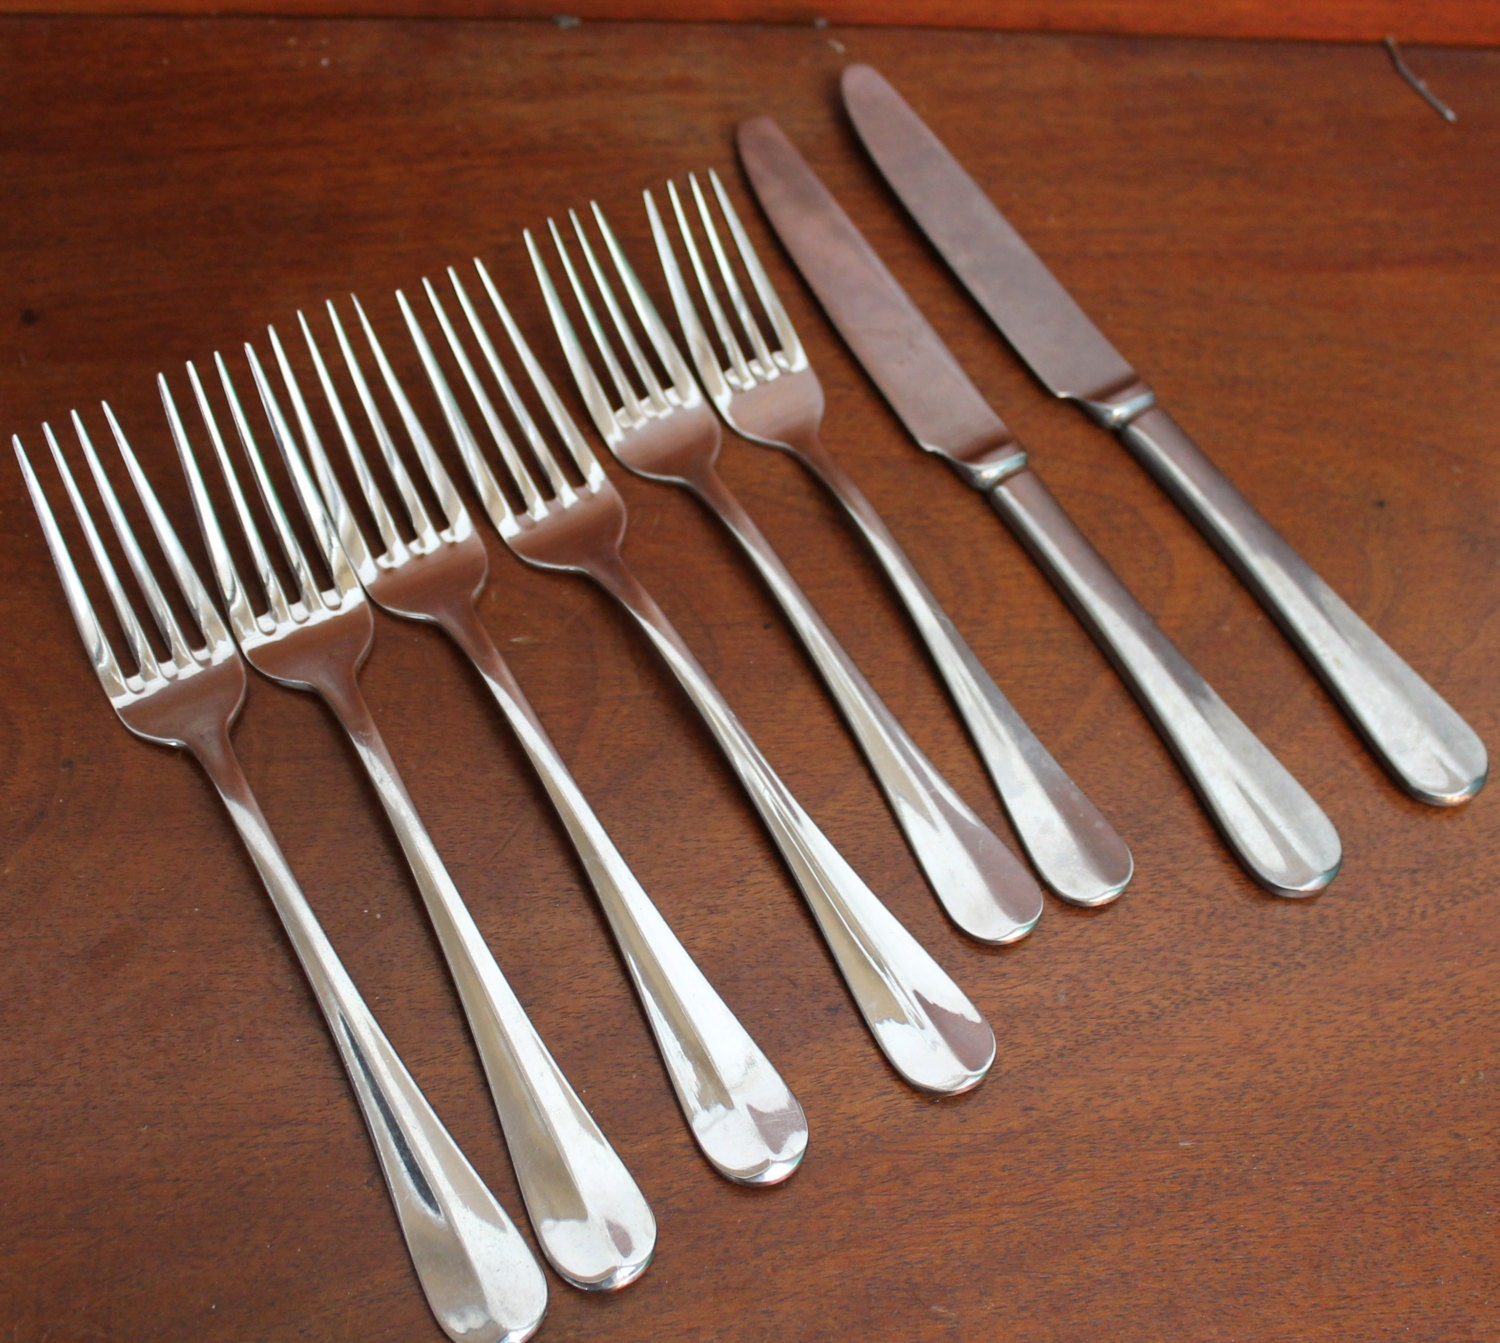 Handmade gs silverware 28 images gourmet settings non stop 20 flatware gs gourmet setting - Handmade gs silverware ...